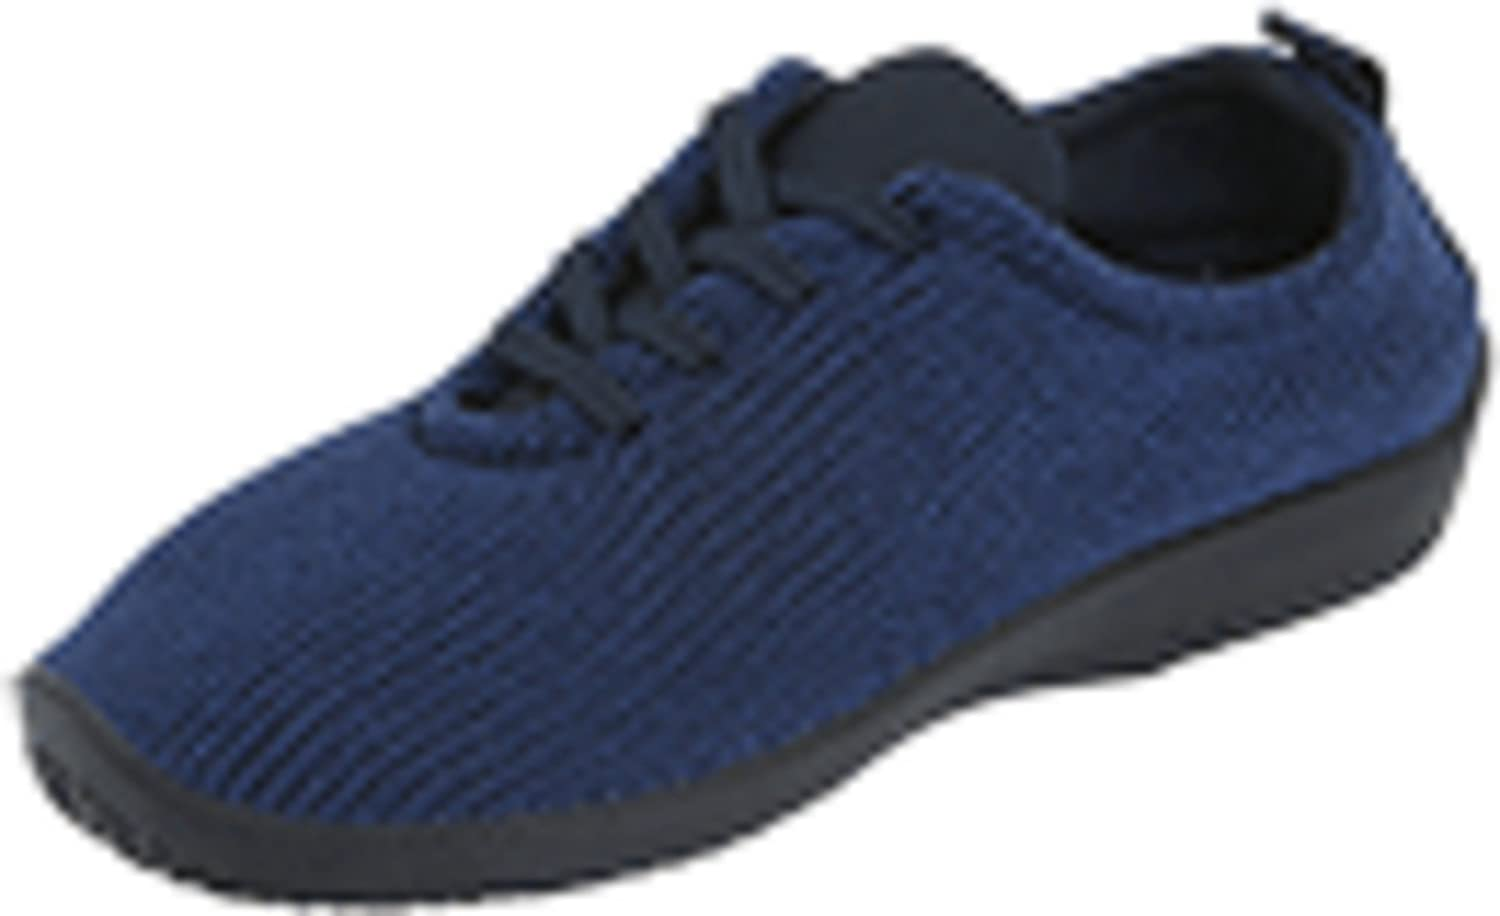 Arcopedico LS Quantity limited Knit Shoe Up Super special price Lace